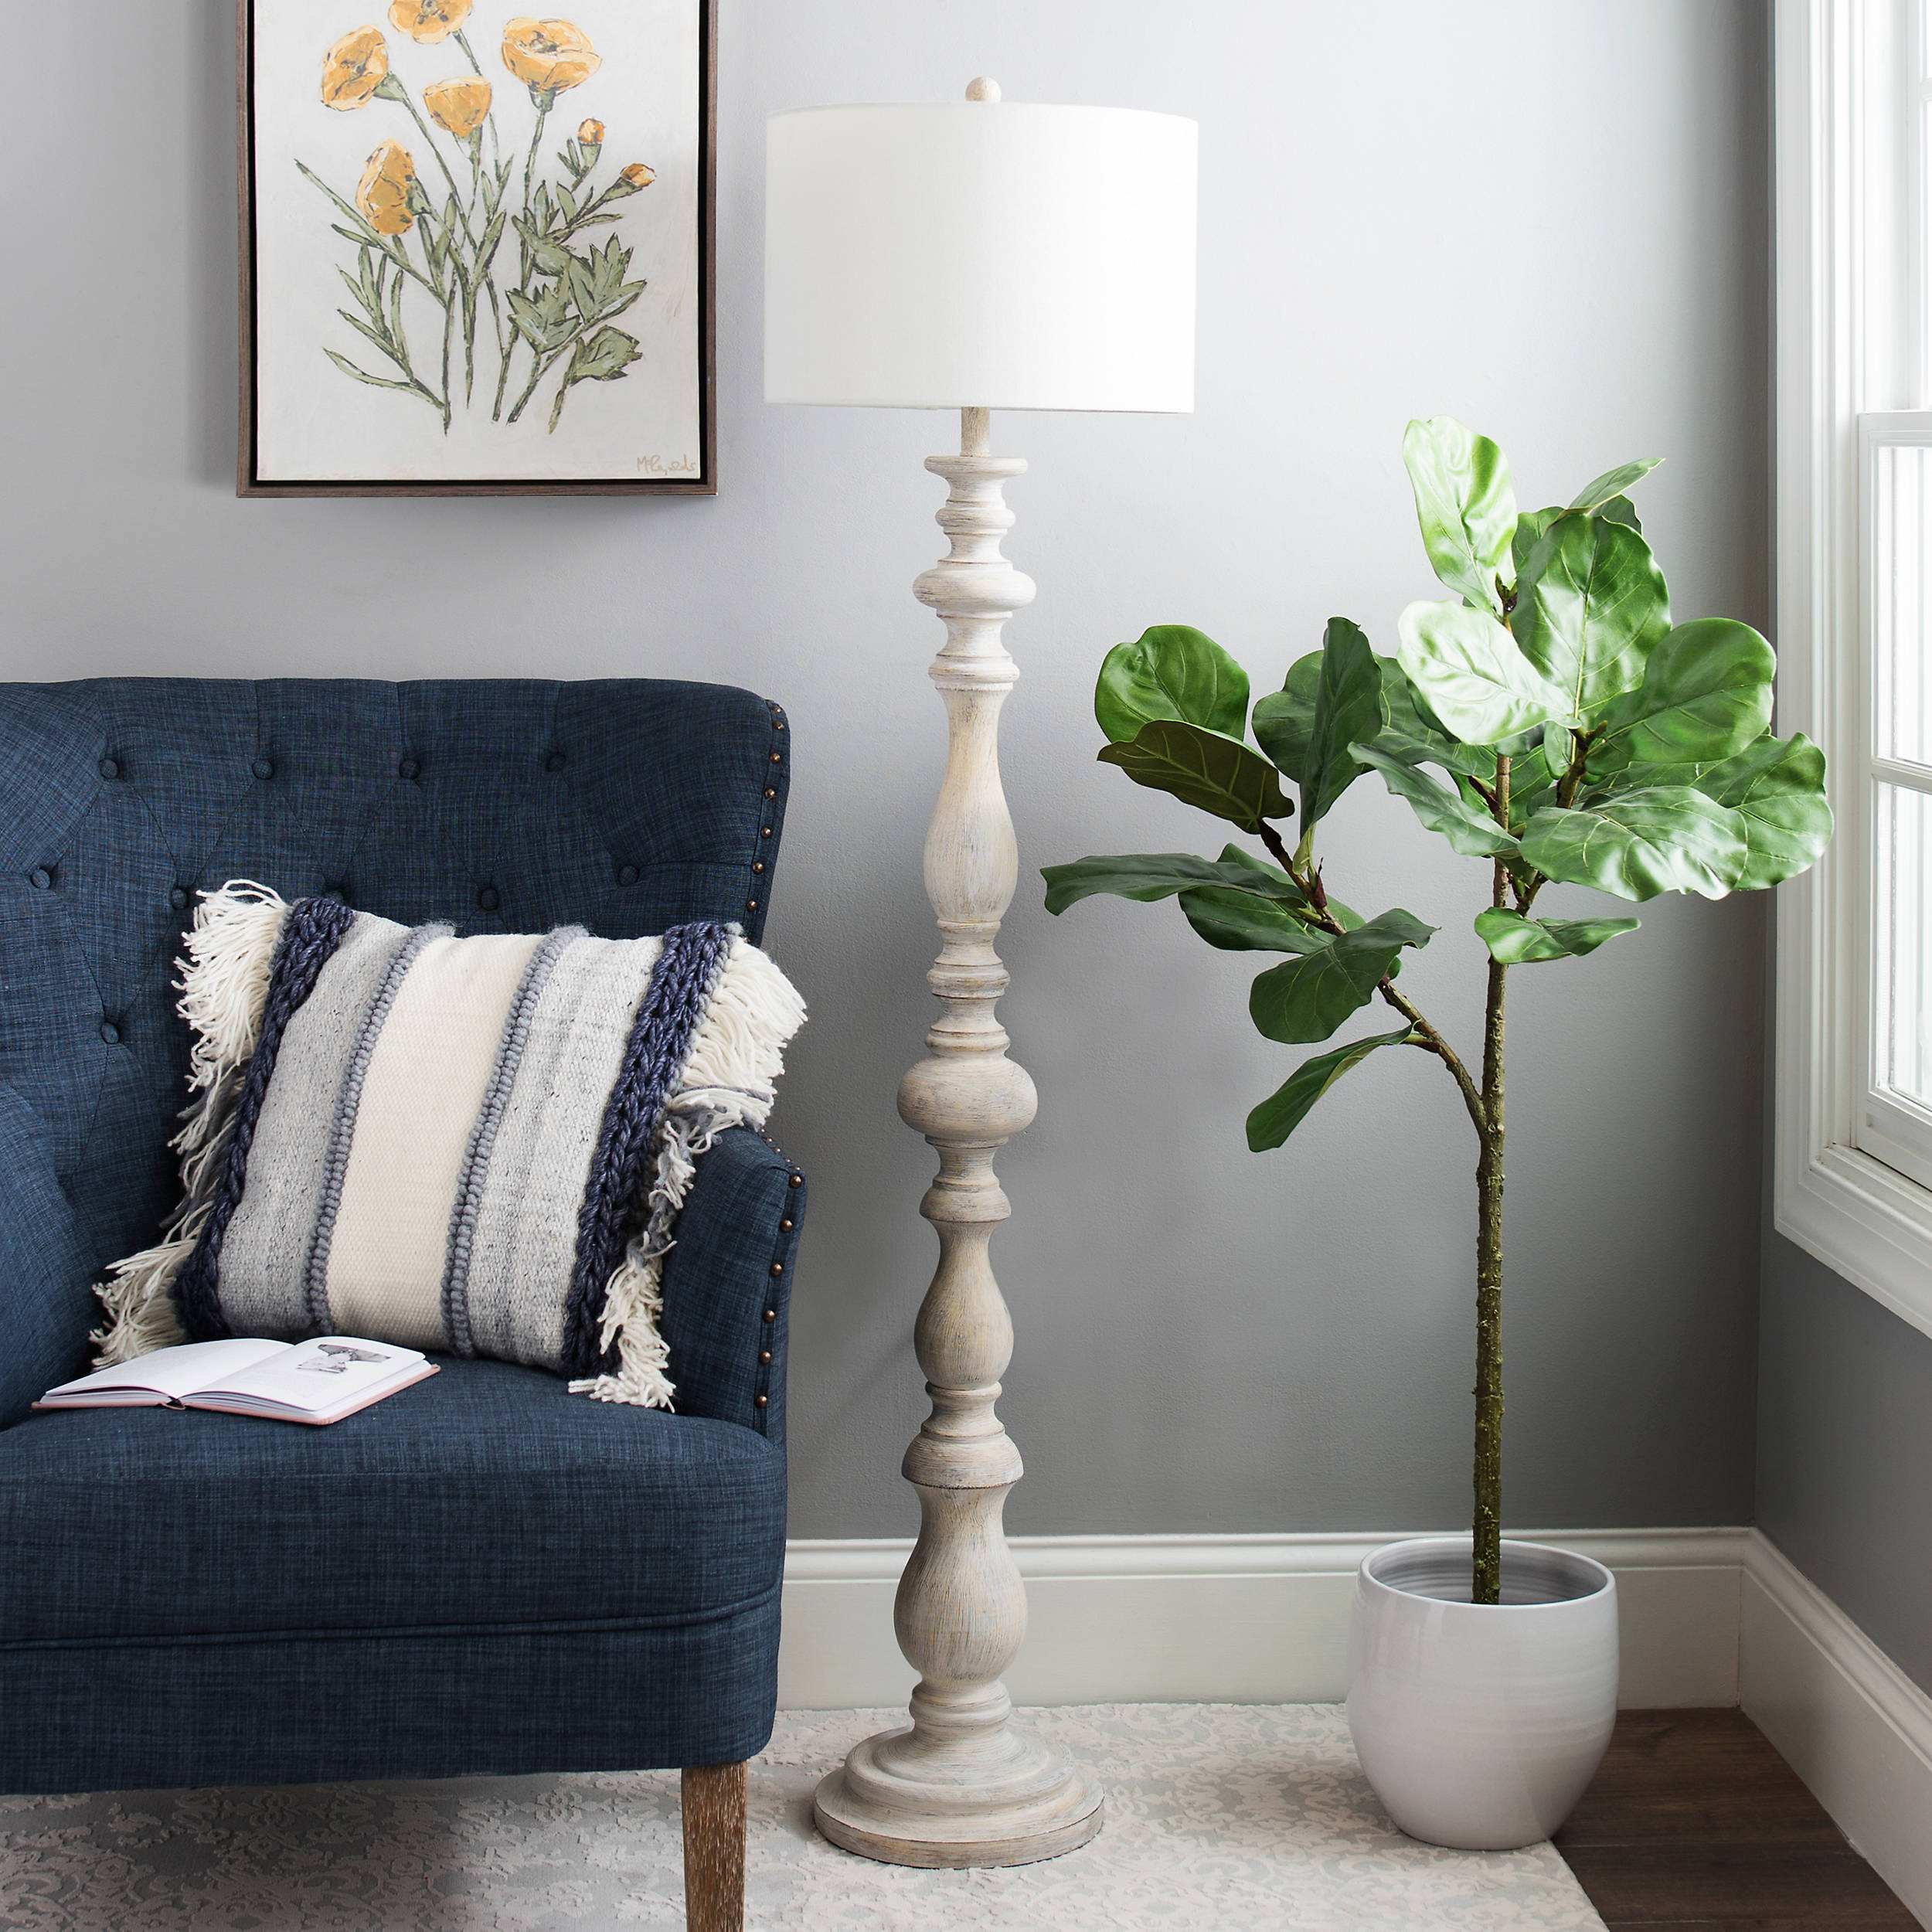 Shop Distressed Cream Carved Spindle Floor Lamp from Kirkland's on Openhaus